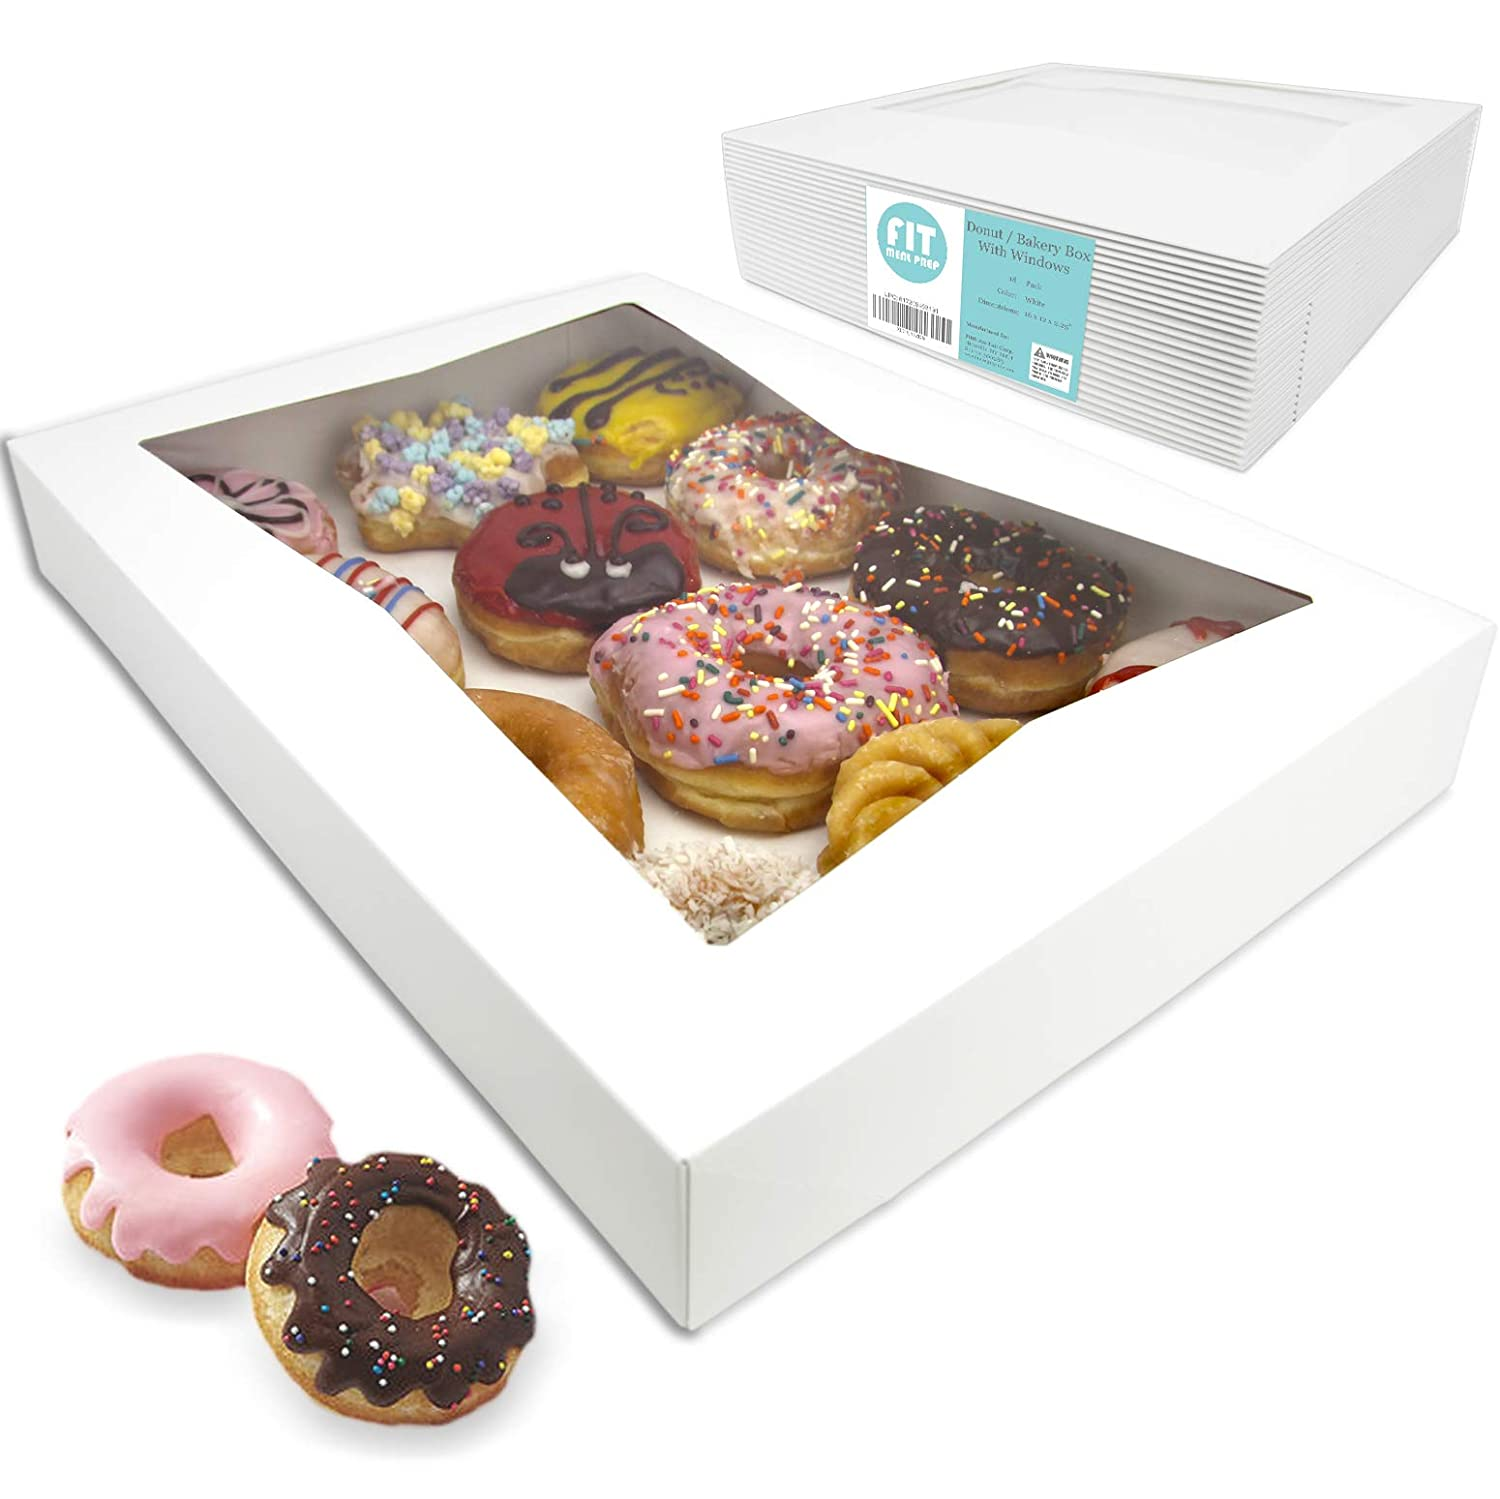 "[18 Pack] 16x12x2.25"" White Bakery Box with Window - Holds 12 Donuts, Auto-Popup Cardboard Gift Packaging and Baking Containers, Cookies, Brownies, Pastry and Bread Boxes"